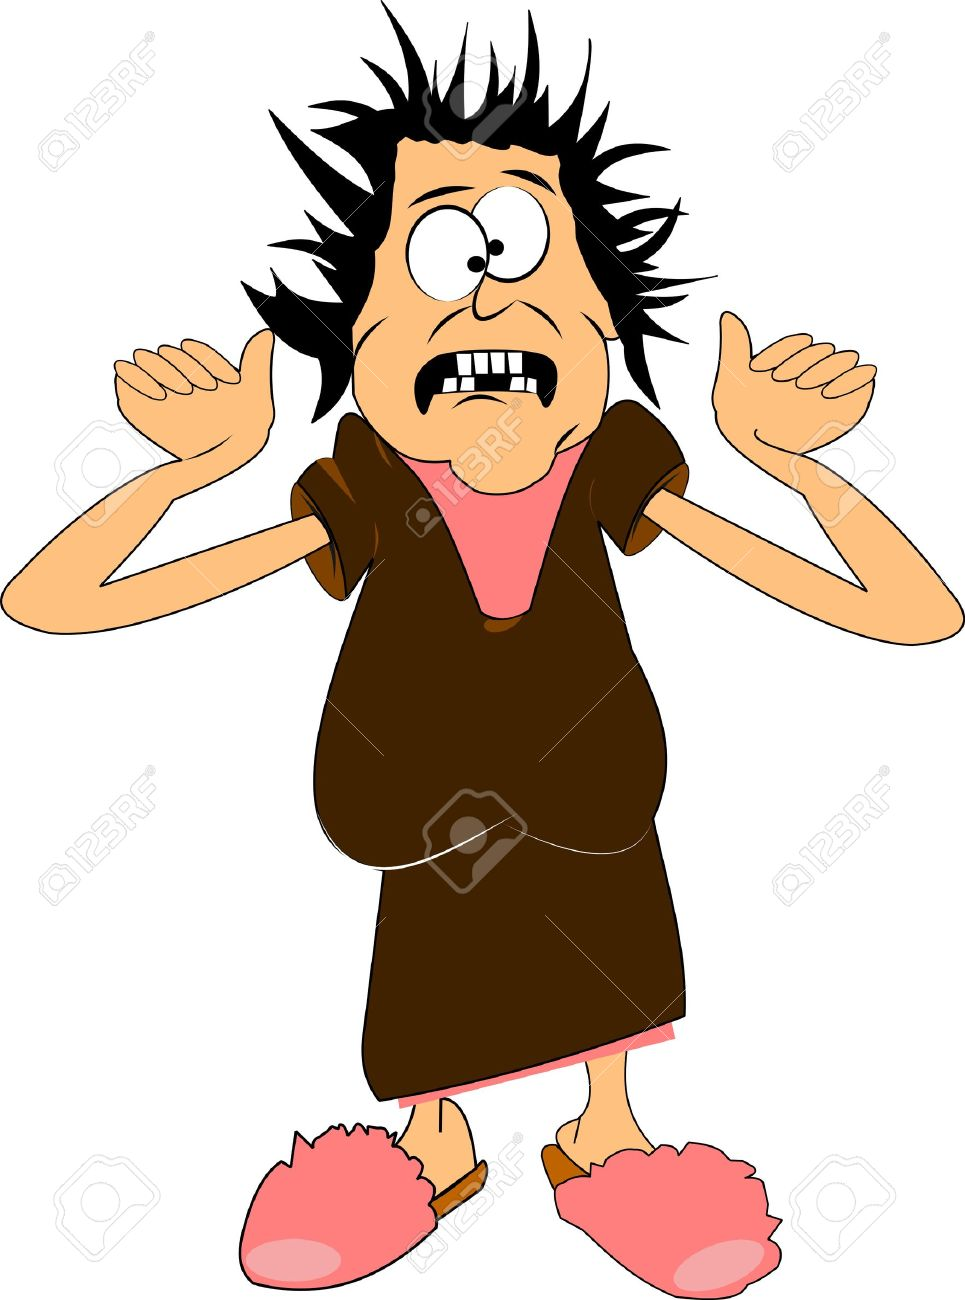 Scared Momma Over White Cartoon Clip Art Royalty Free Cliparts.